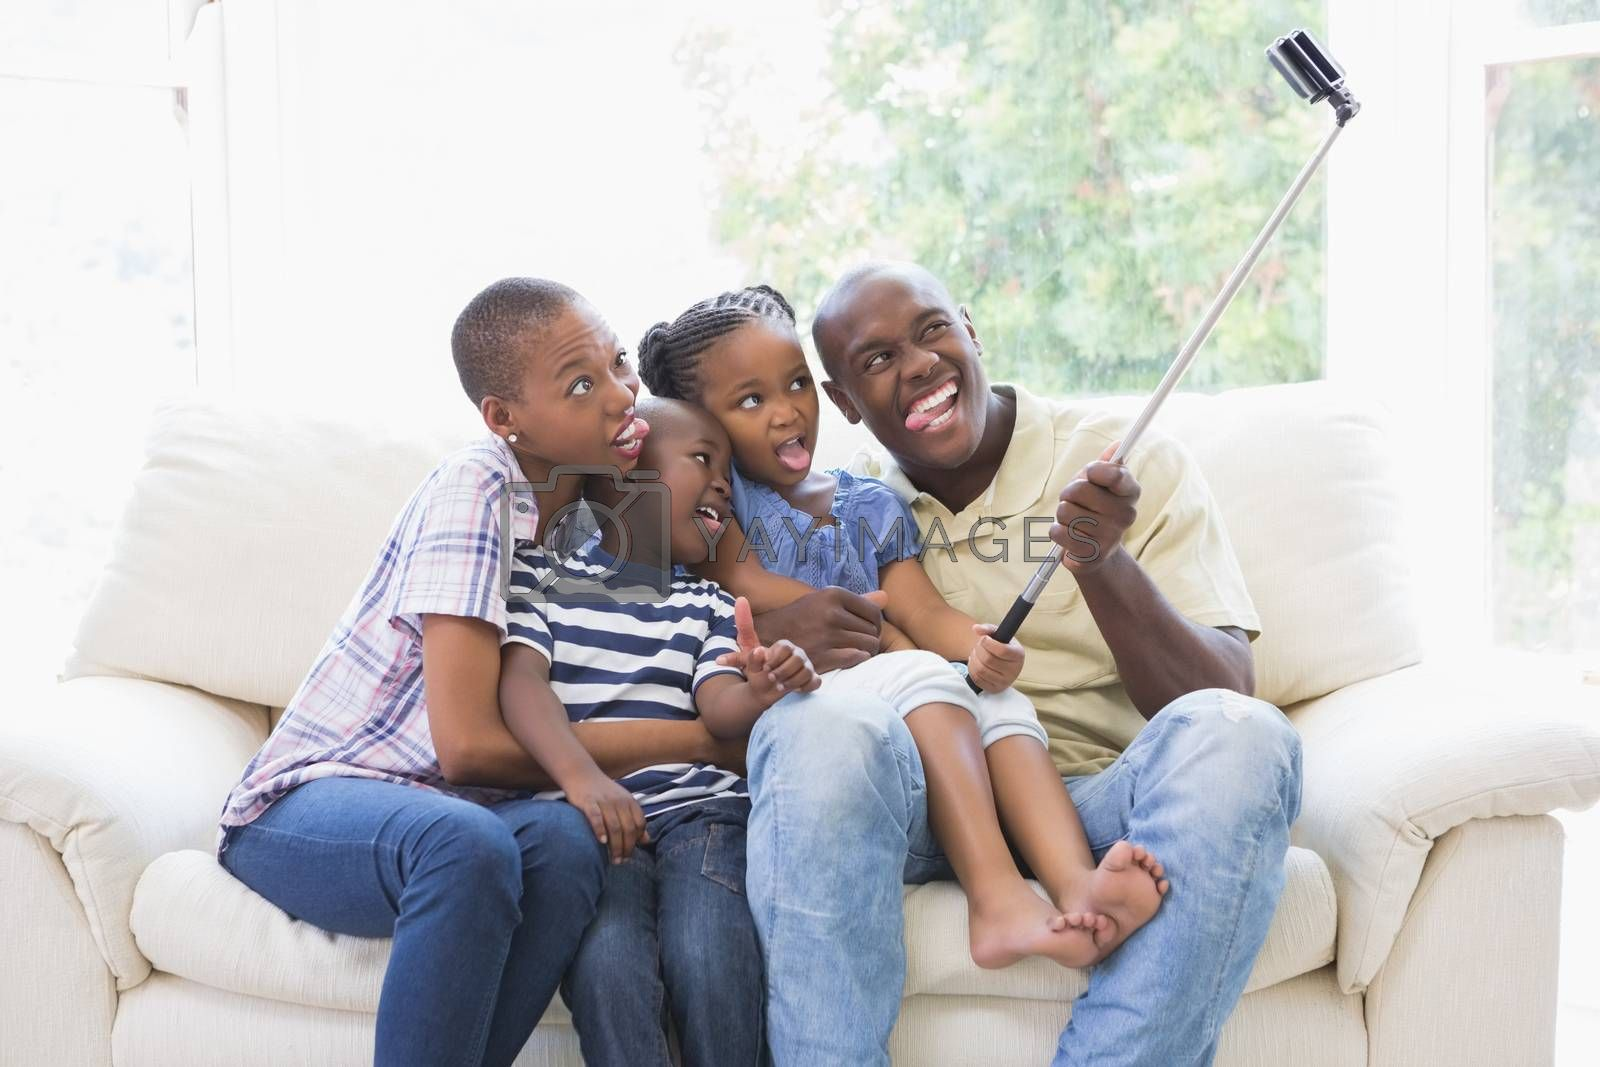 Royalty free image of Happy family on the couch taking a selfie  by Wavebreakmedia